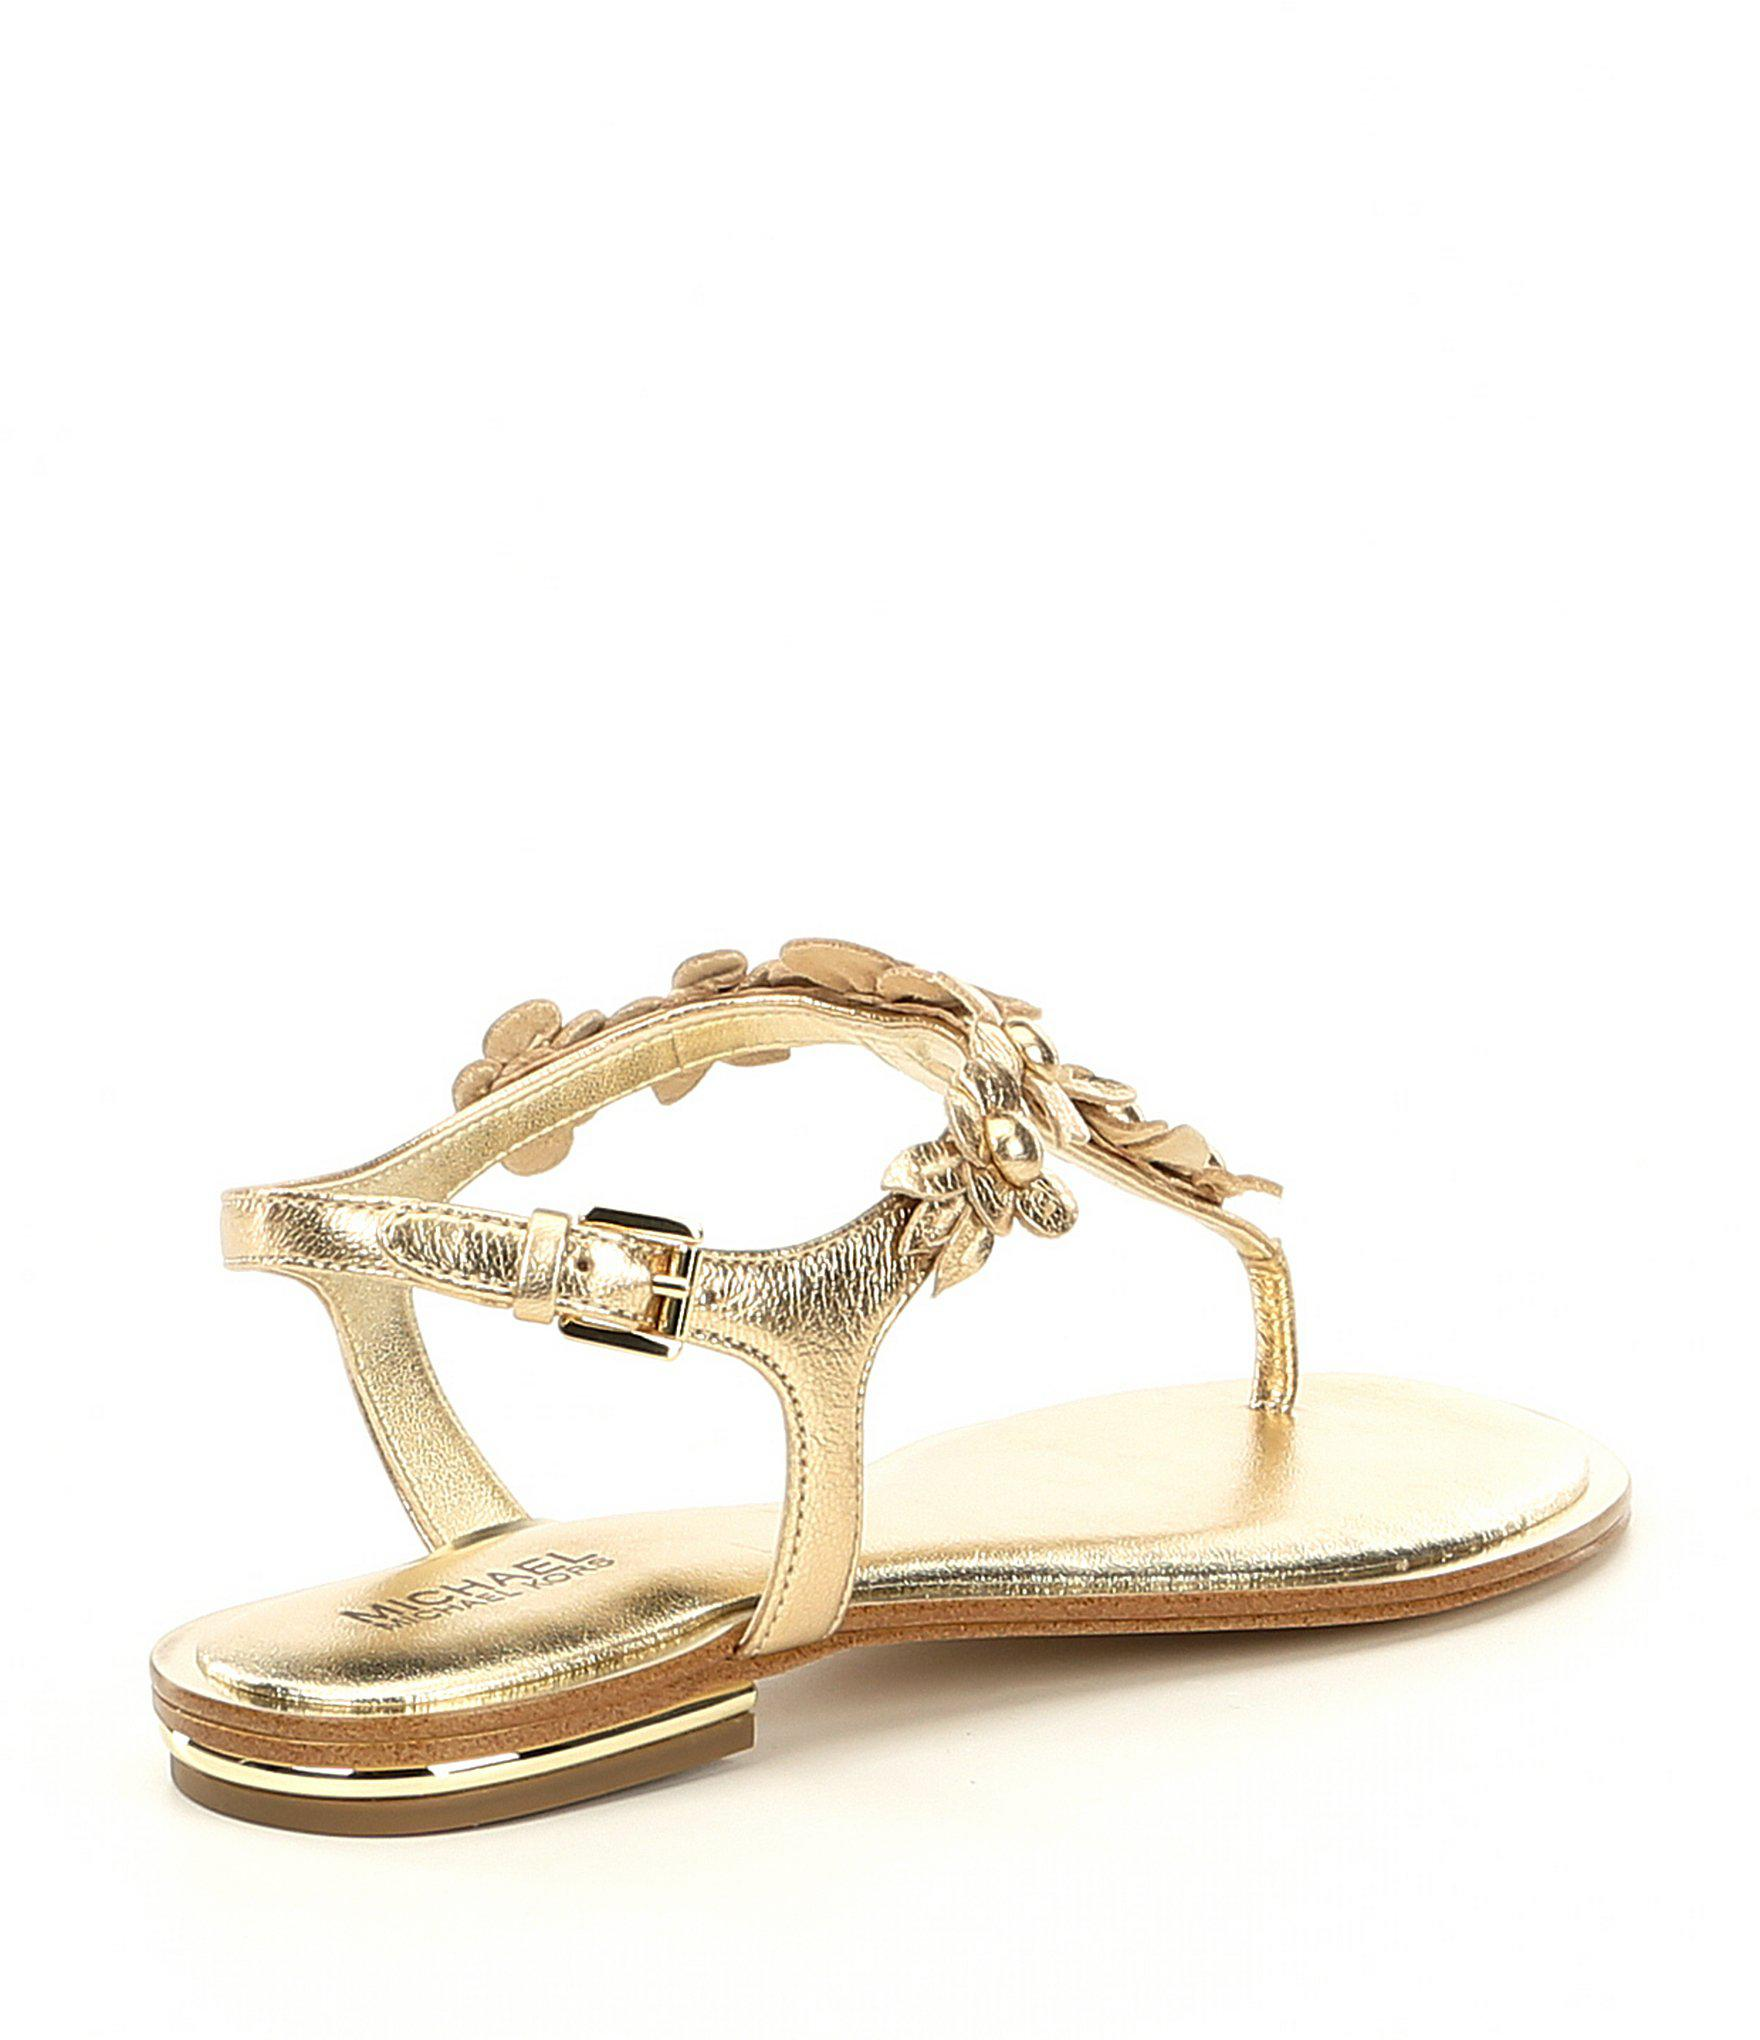 0468f730444a Lyst - MICHAEL Michael Kors Tricia Metallic Floral Thong Sandals in ...